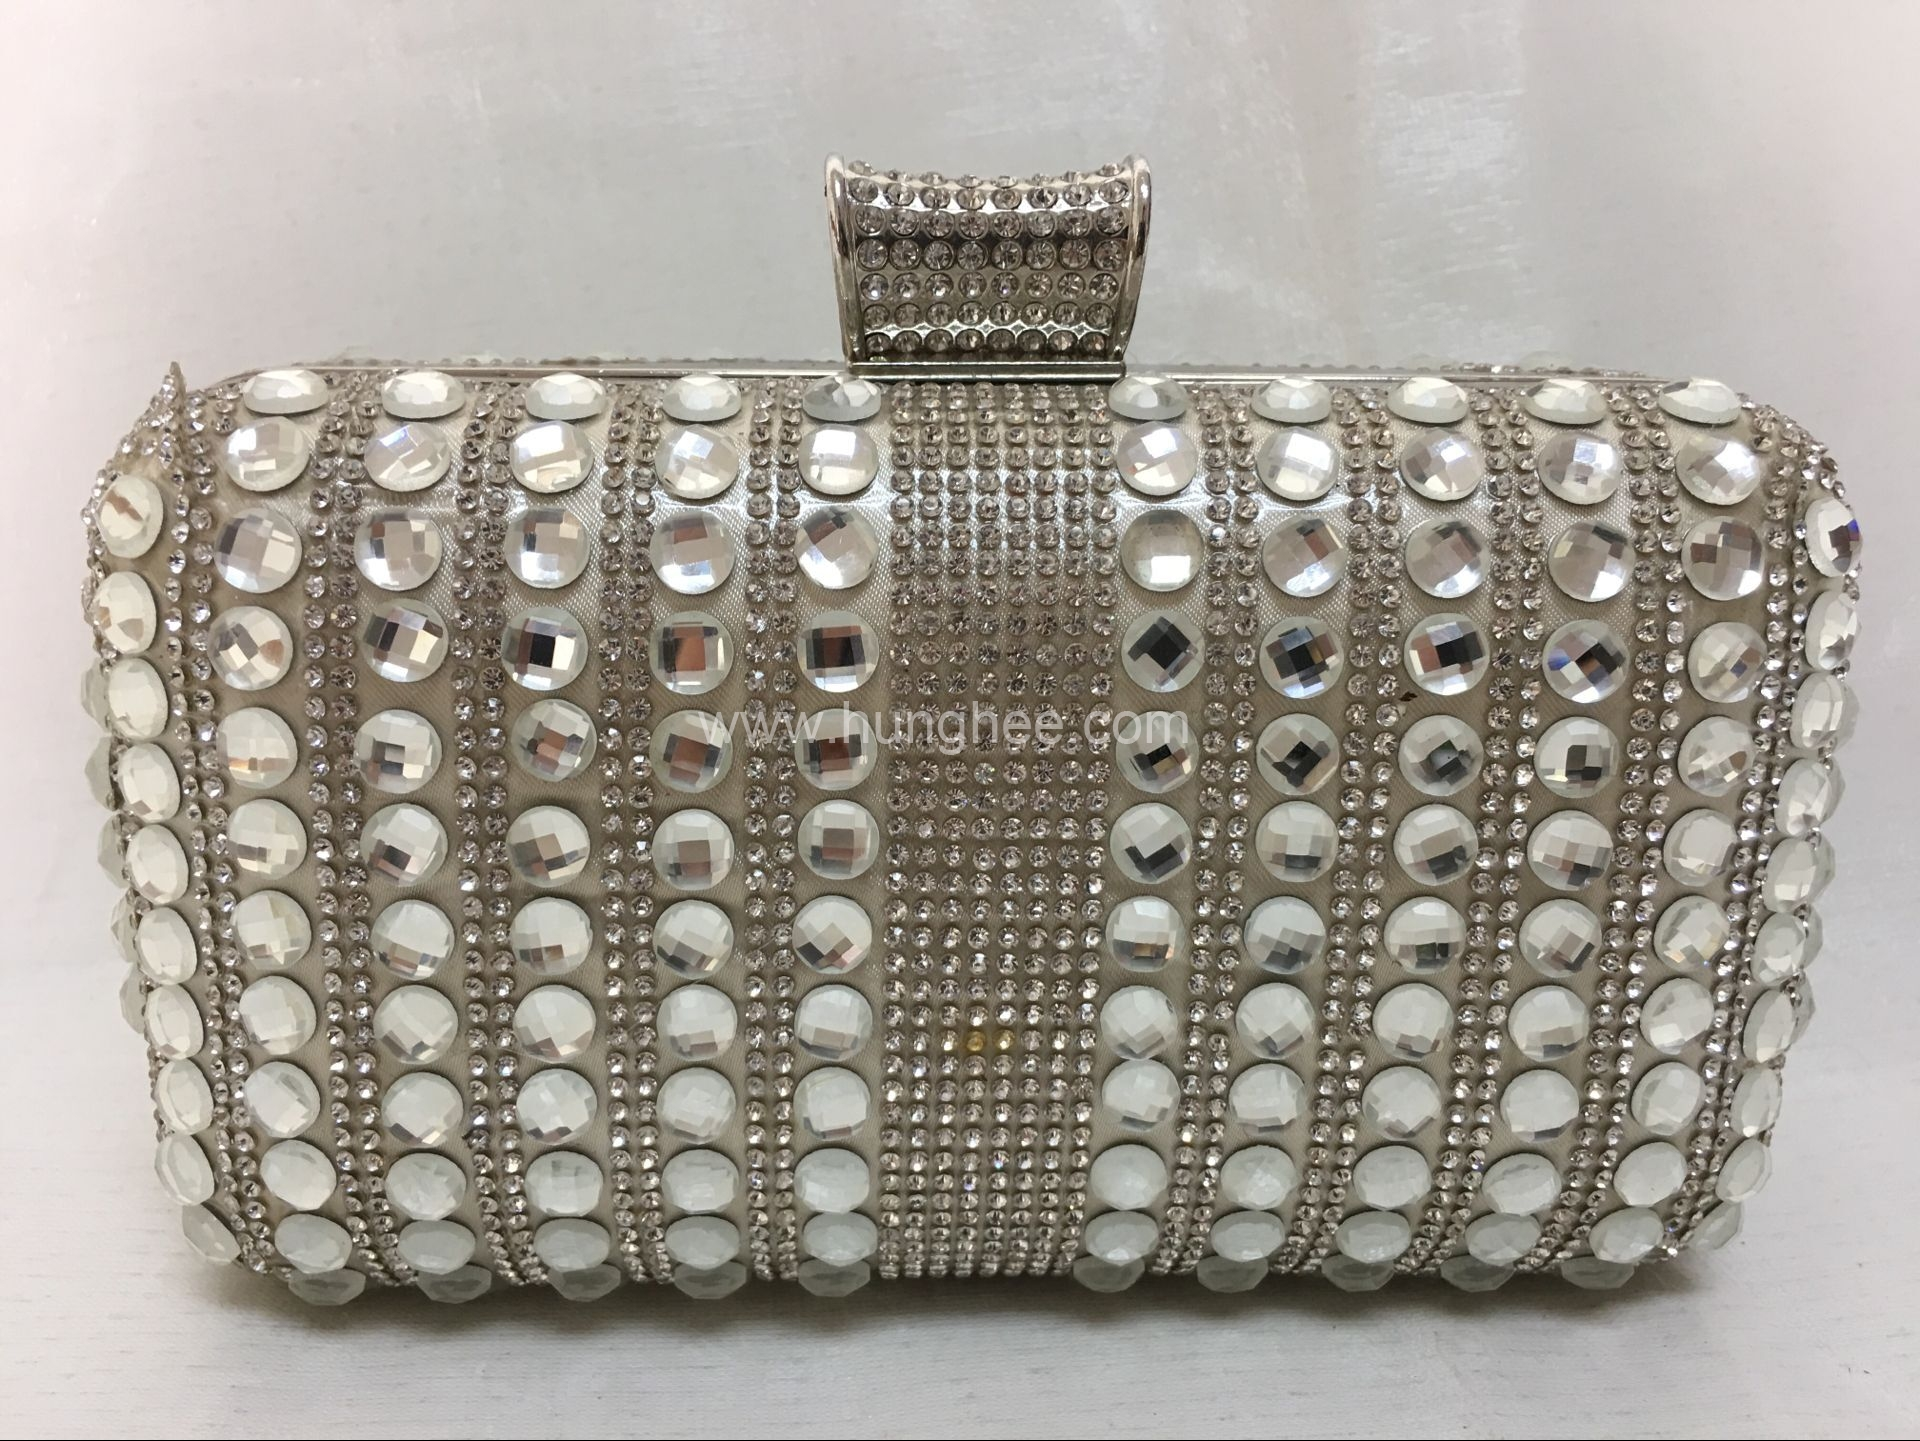 White Rhinestone Crystals Bridal Wedding Hard Case Crystal Evening Purses HH-CR70226